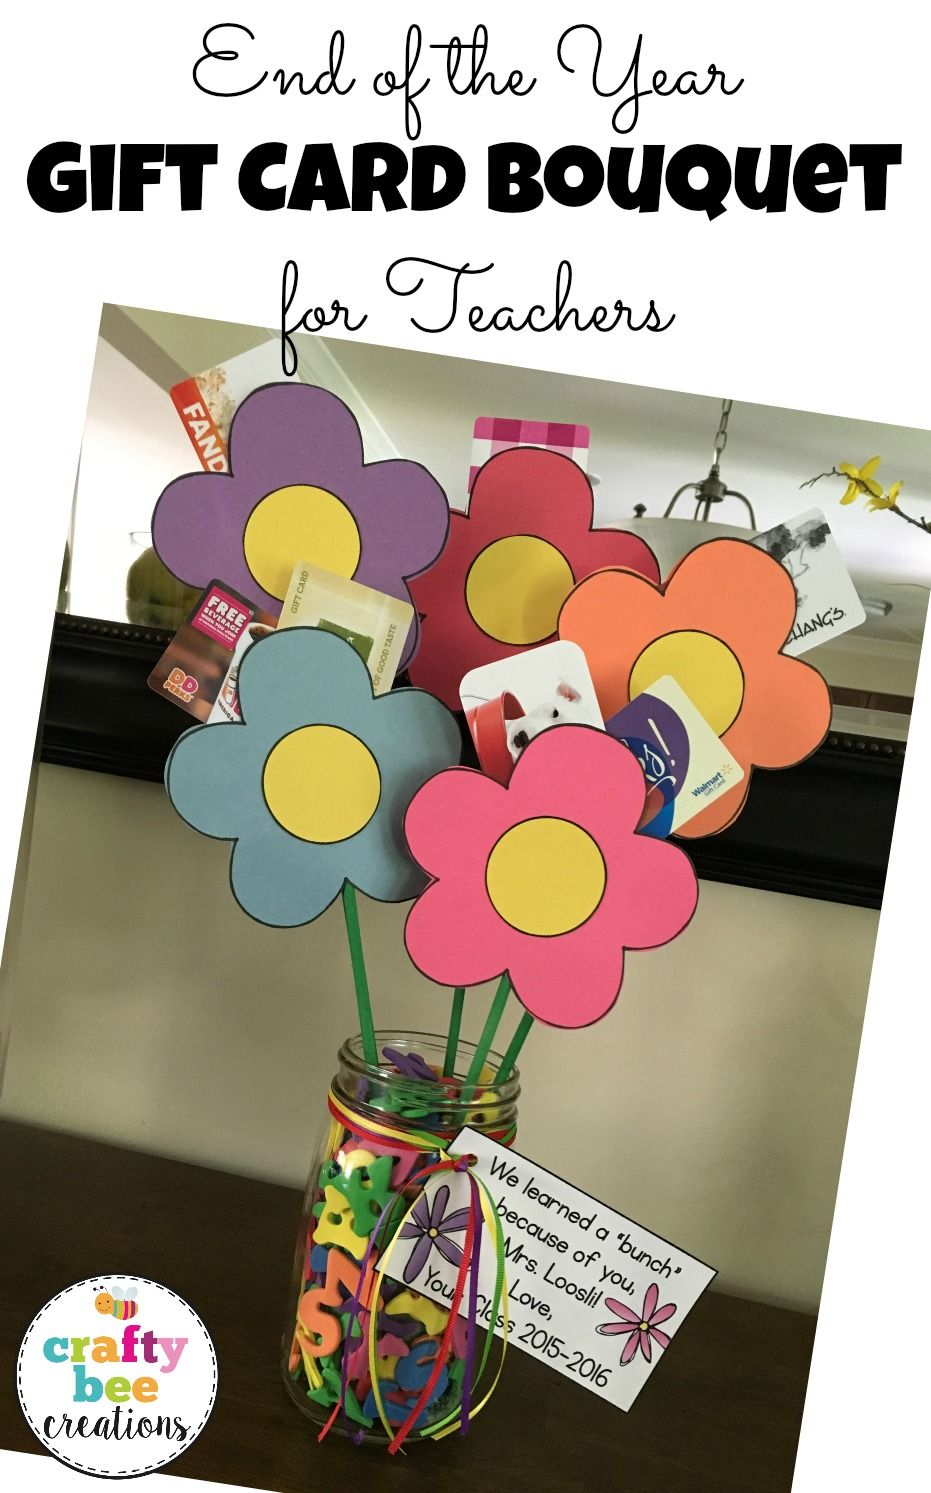 End of the year flower gift card bouquet for teachers